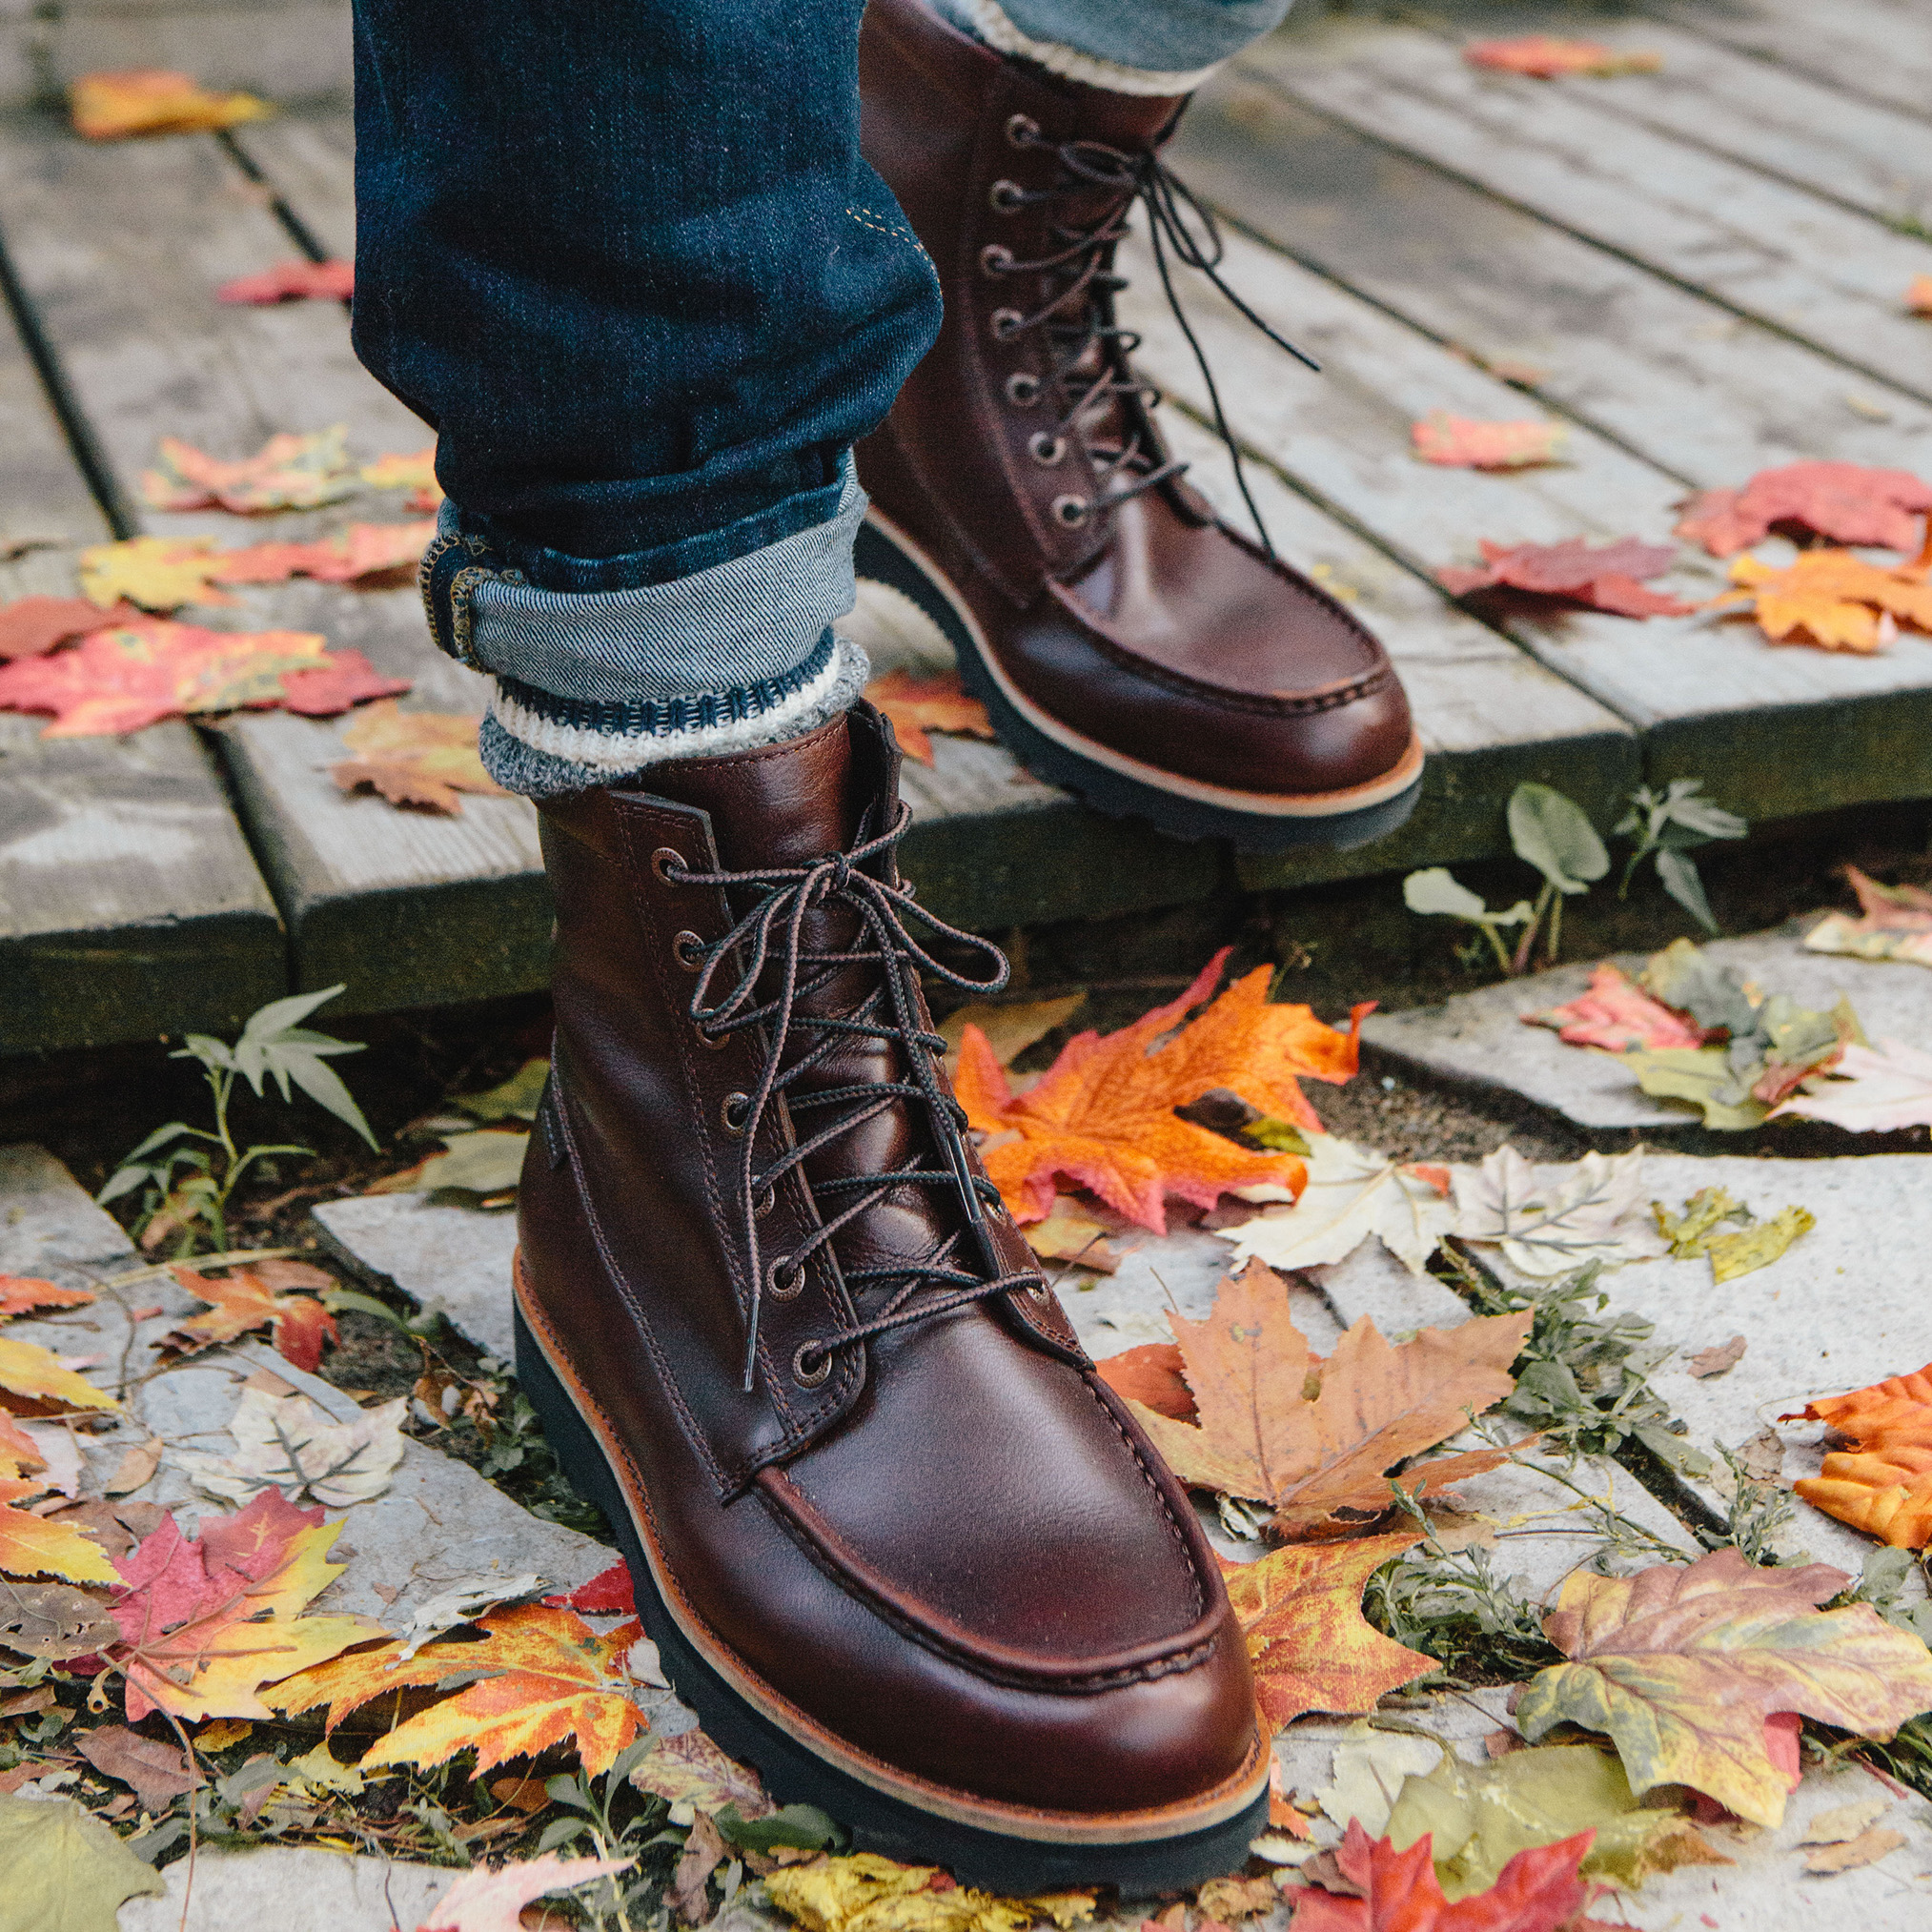 Roots-Footwear Men's Footwear-Shop The Look: Cabin Comfort, City Style-T